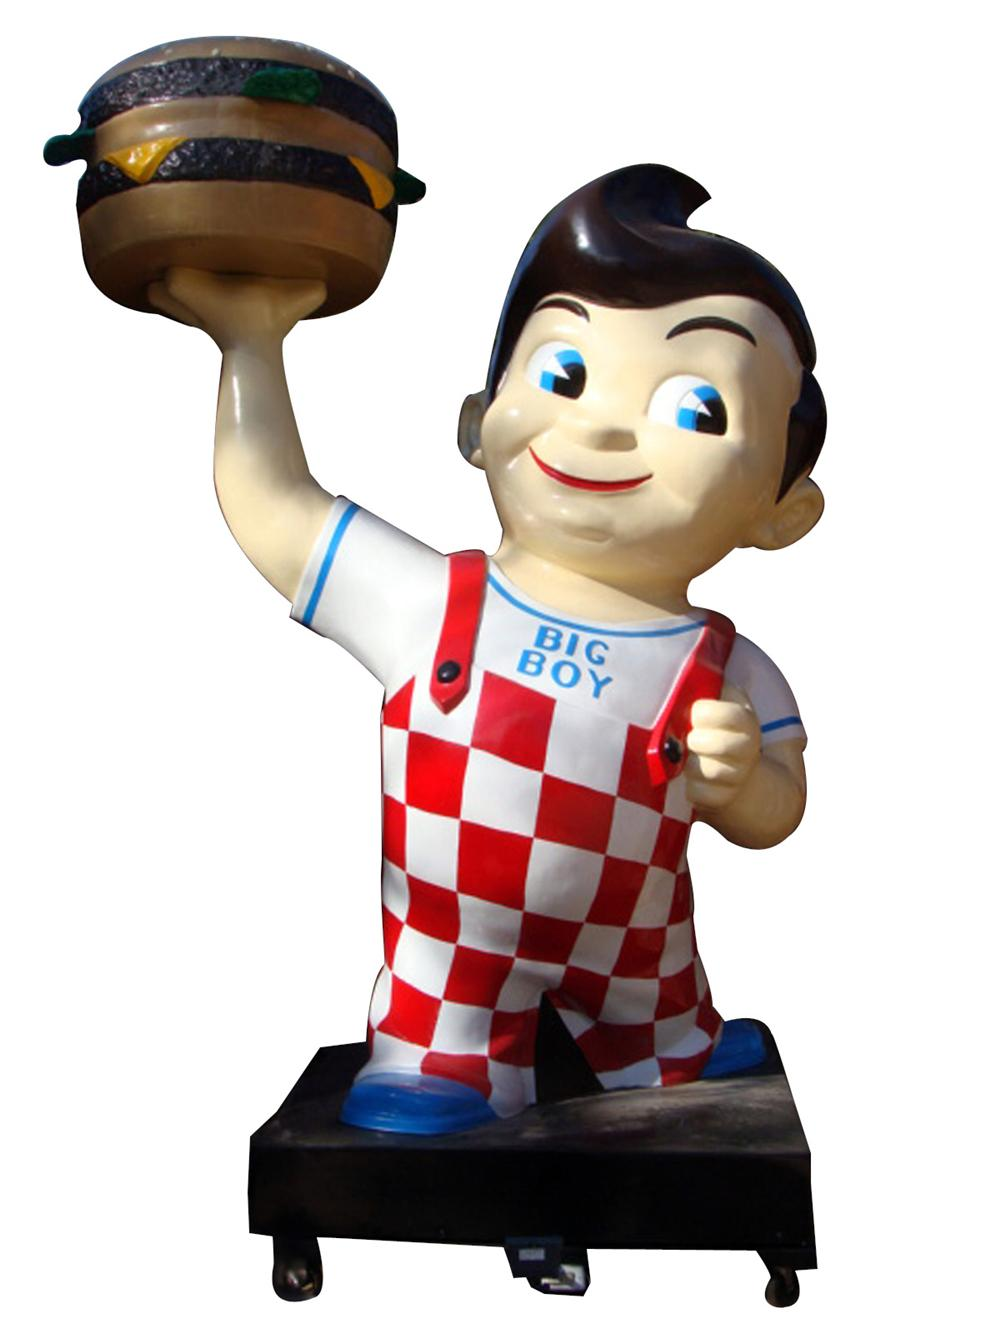 Iconic 1950s-60s Big Boy Restaurant three-dimensional restored drive-in sign. - Front 3/4 - 97760